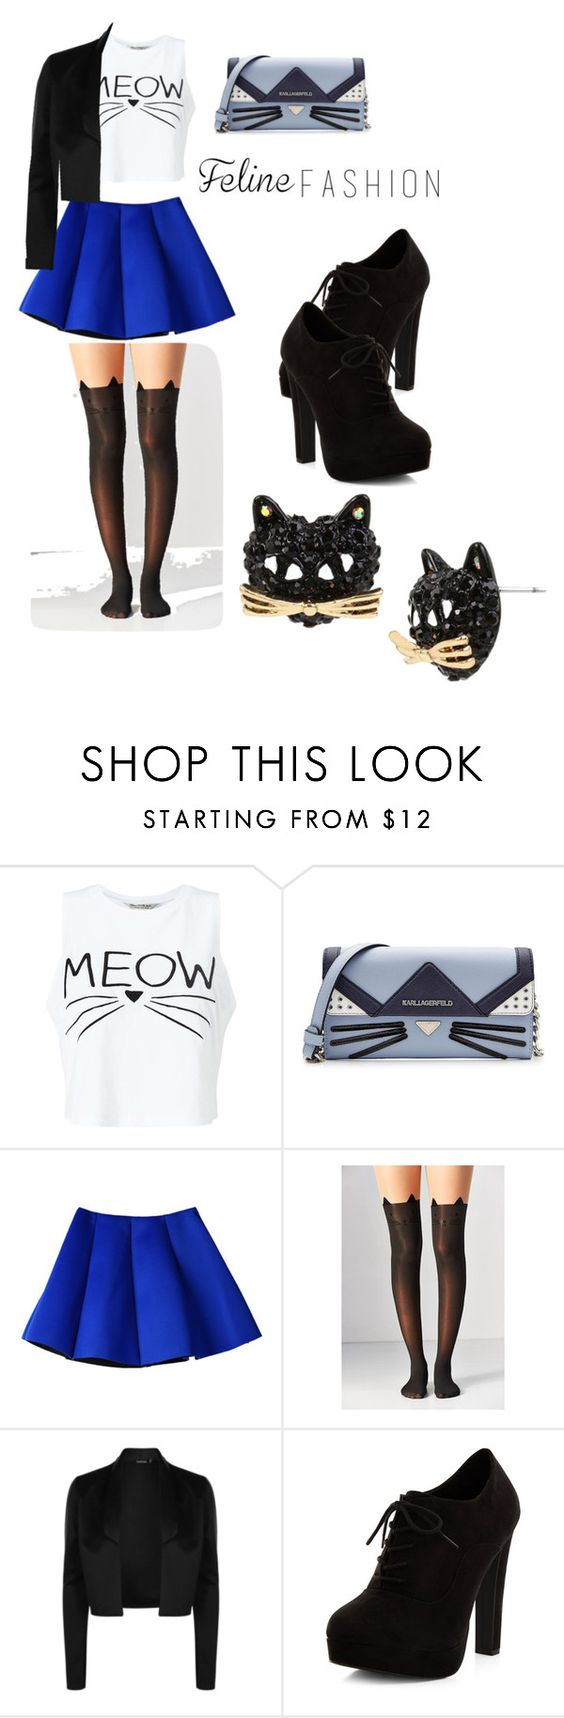 """""""Untitled #56"""" by dominek-leftjustified-jones ❤ liked on Polyvore featuring Miss Selfridge, Karl Lagerfeld, Urban Outfitters, New Look and Betsey Johnson"""